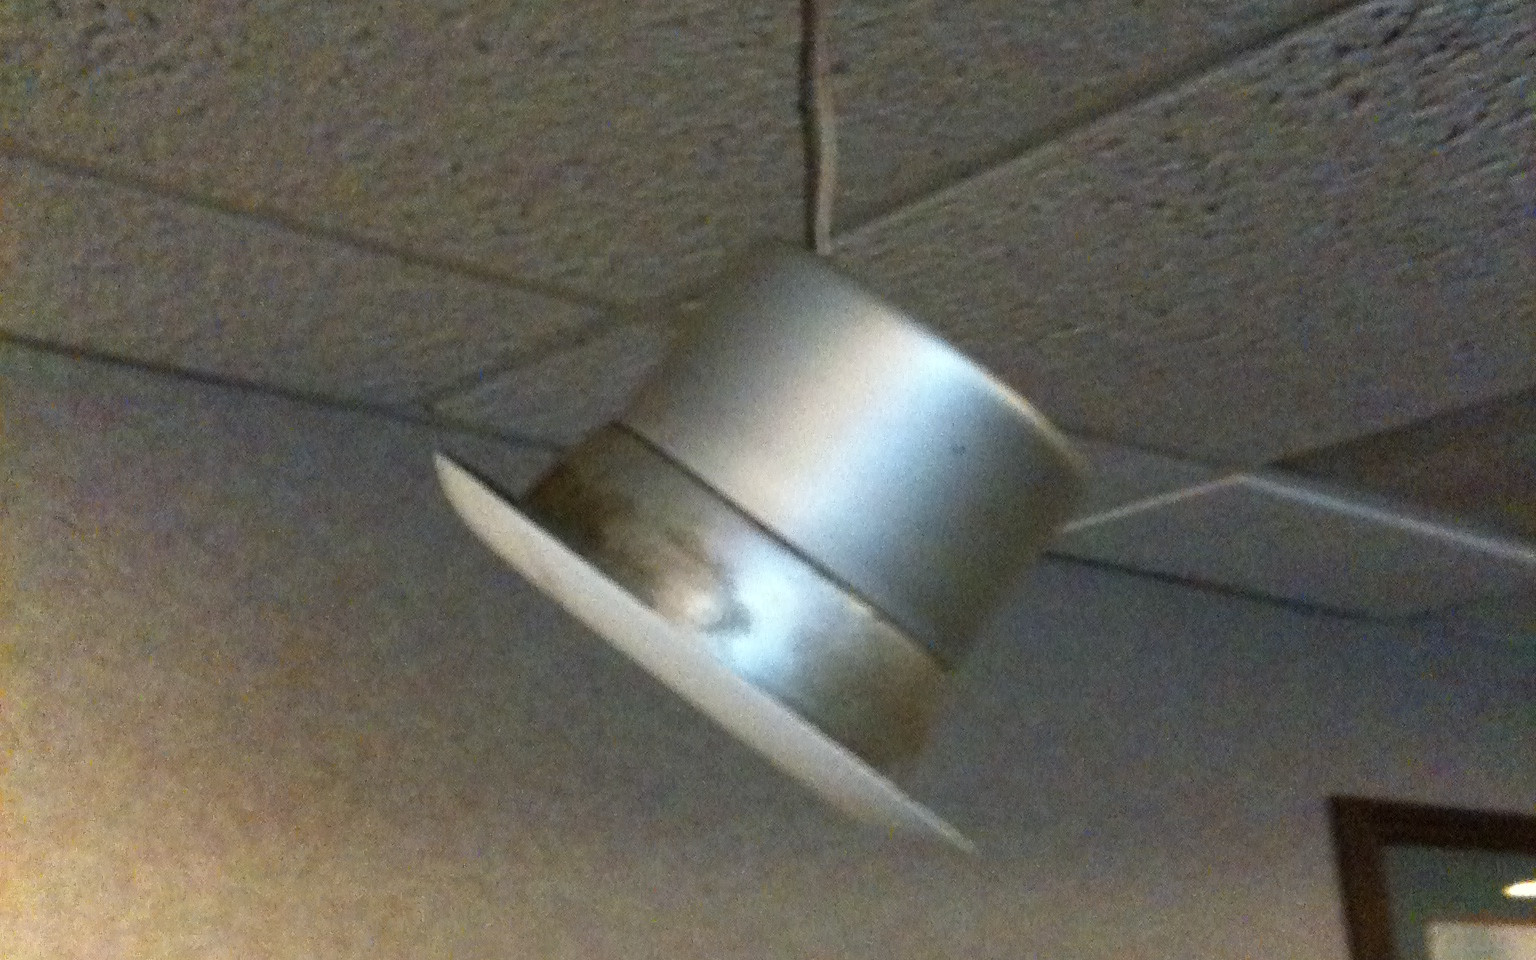 Recessed Light Fell Out Of Its Housing